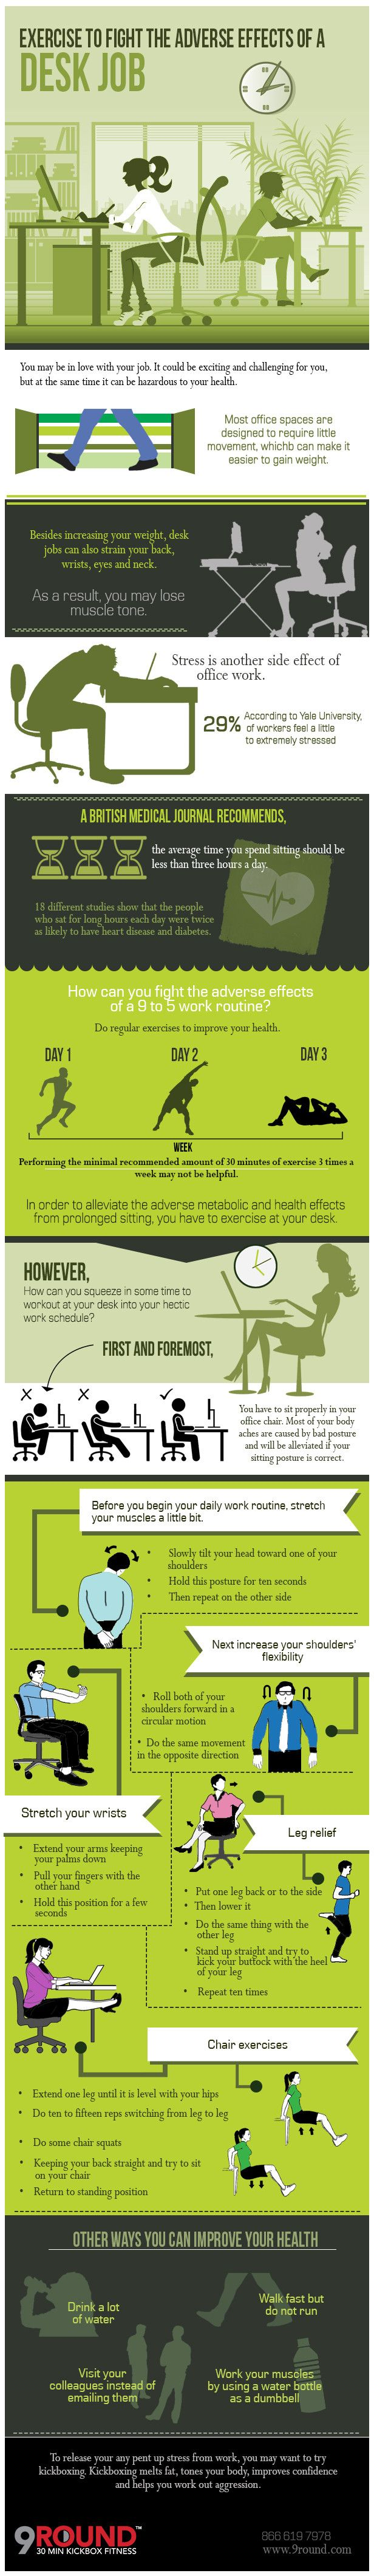 exercise to fight the adverse effects of a desk job infographic health tim o 39 brien and exercise. Black Bedroom Furniture Sets. Home Design Ideas